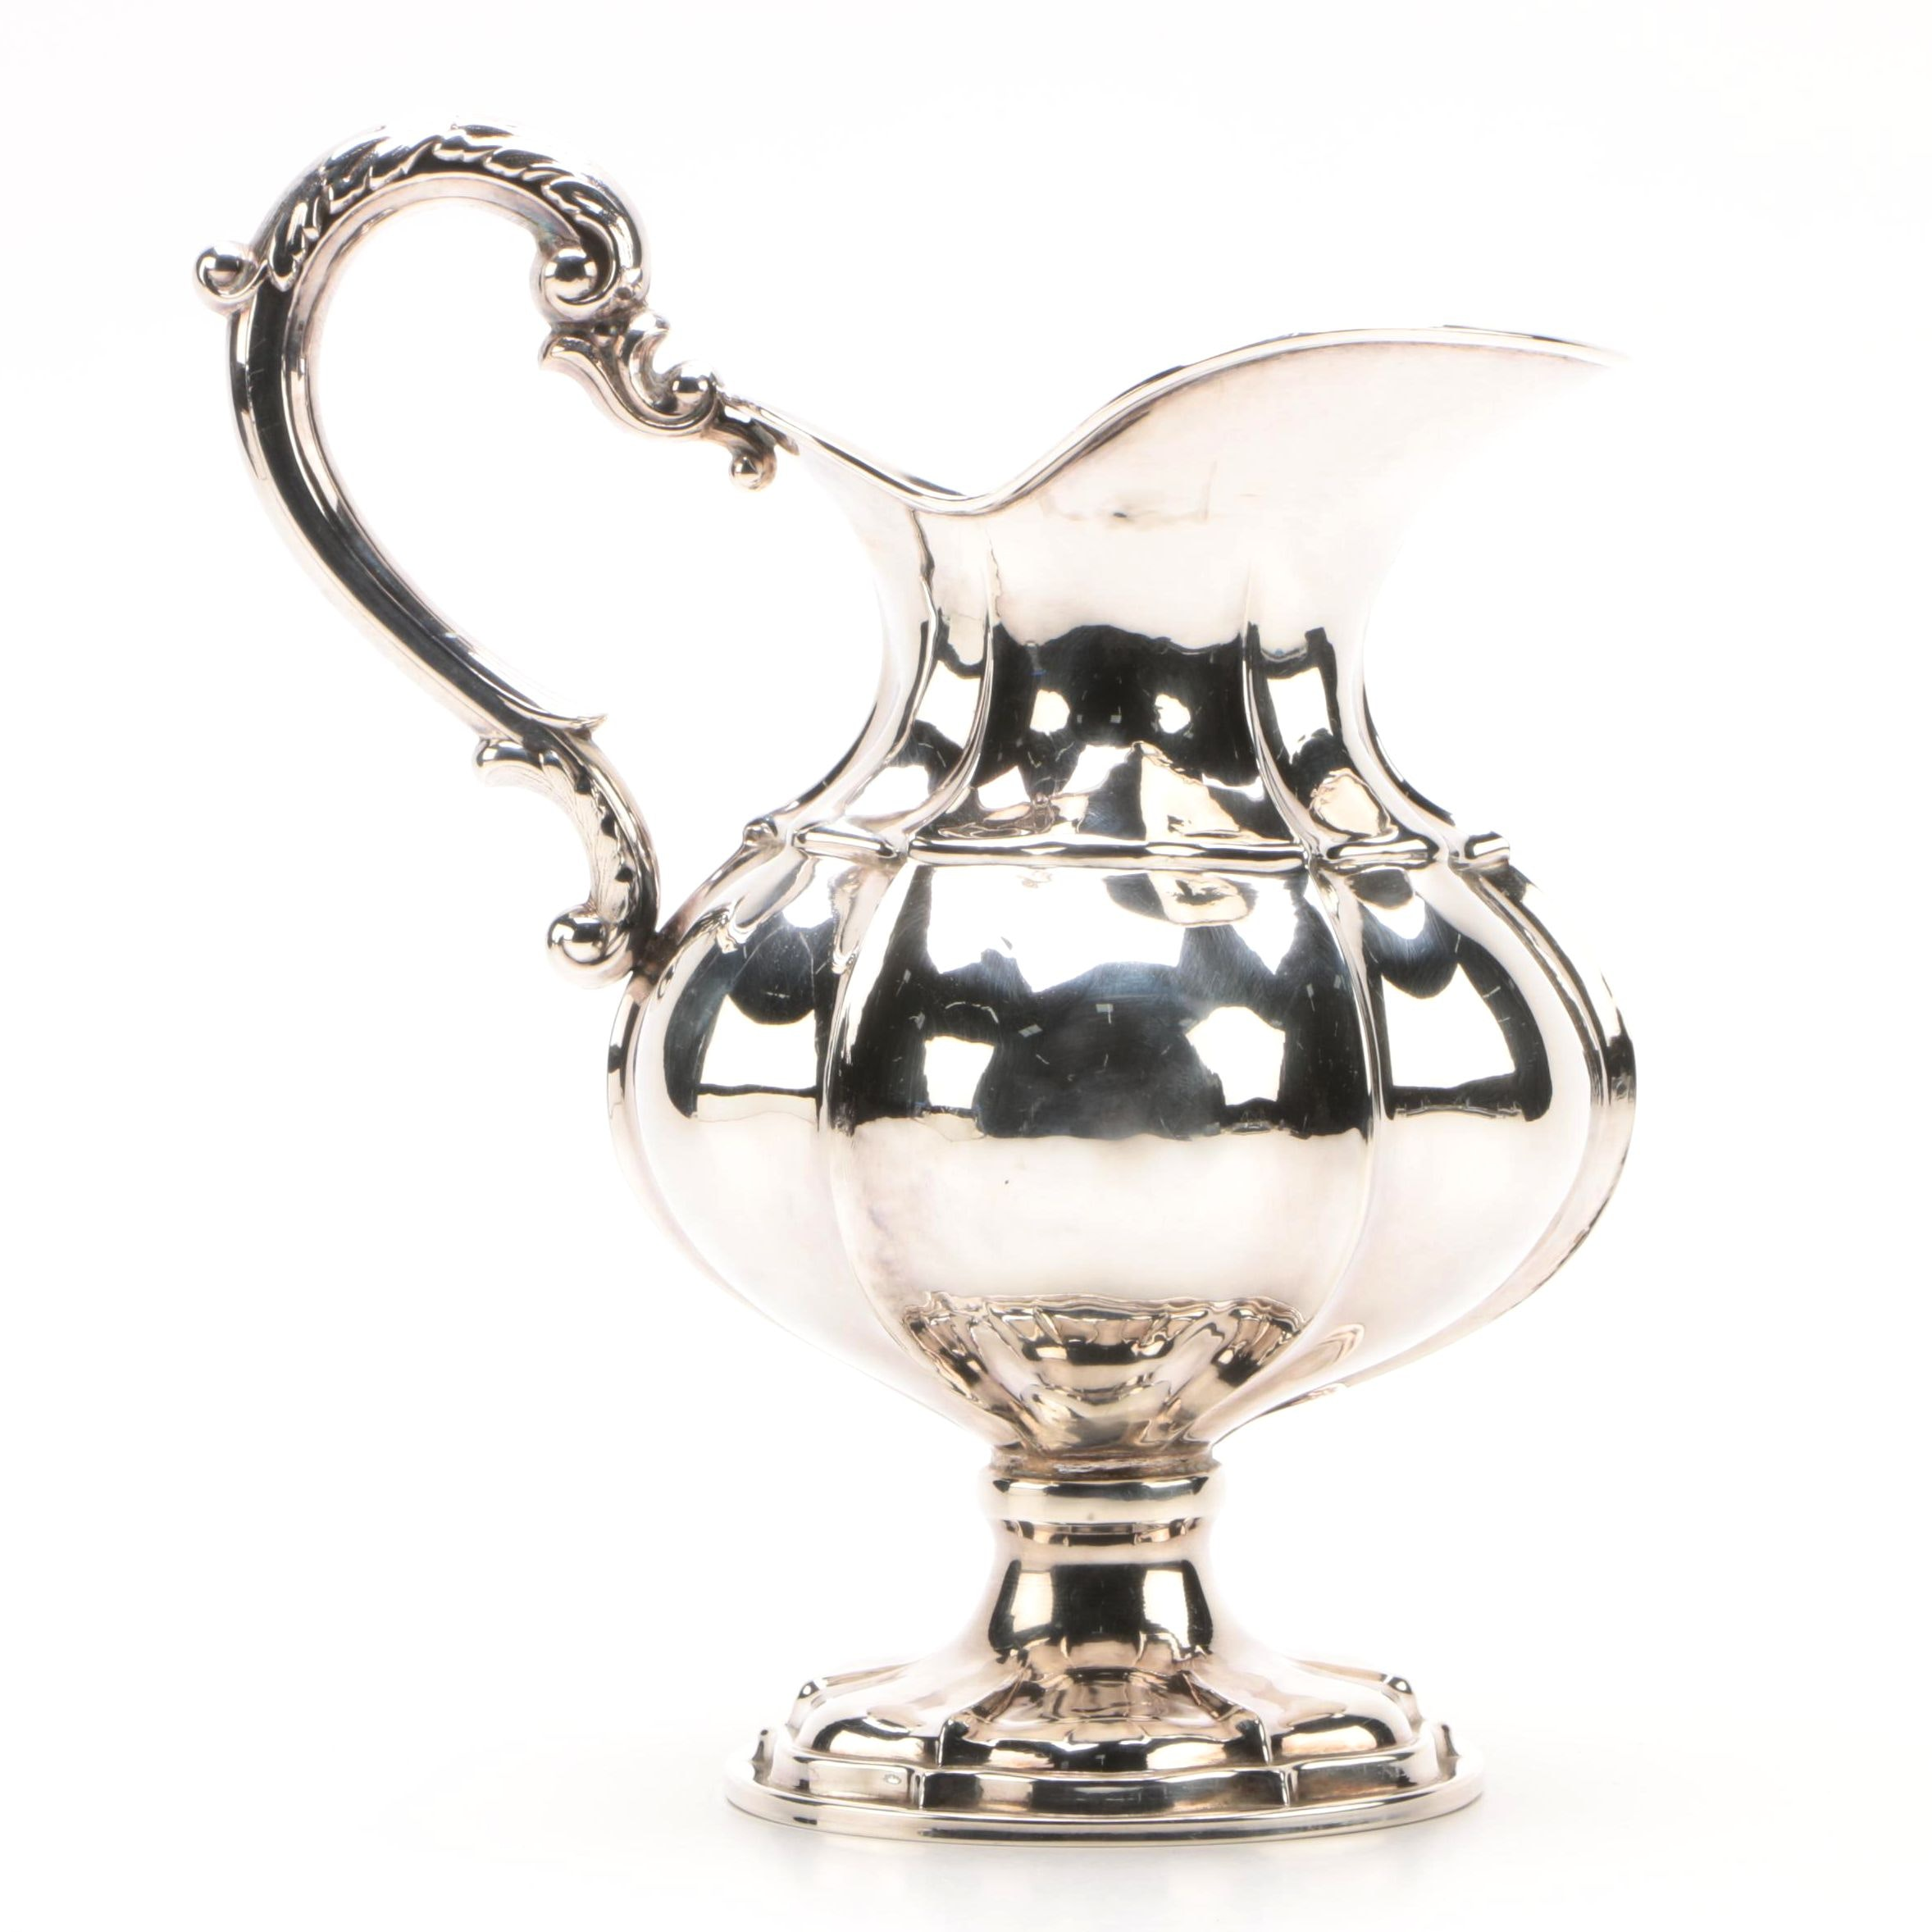 Vintage Spanish 915 Silver Pitcher with Scrolled Acanthus Motif Handle